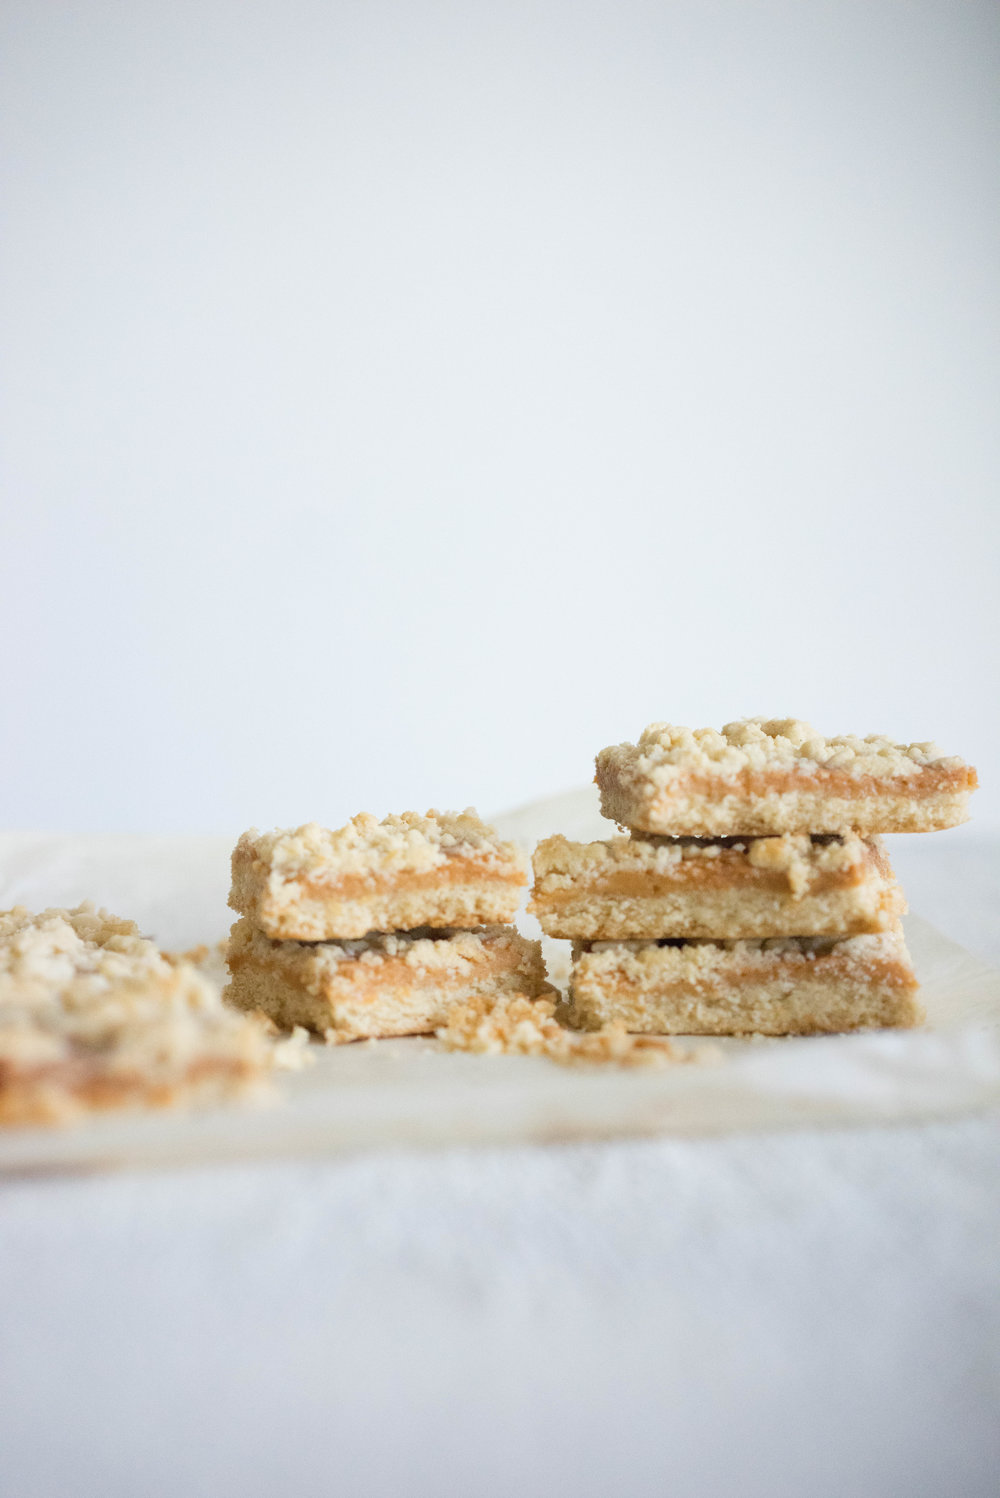 Tan square - shortbread base, condensed milk caramel, and a shortbread crumble